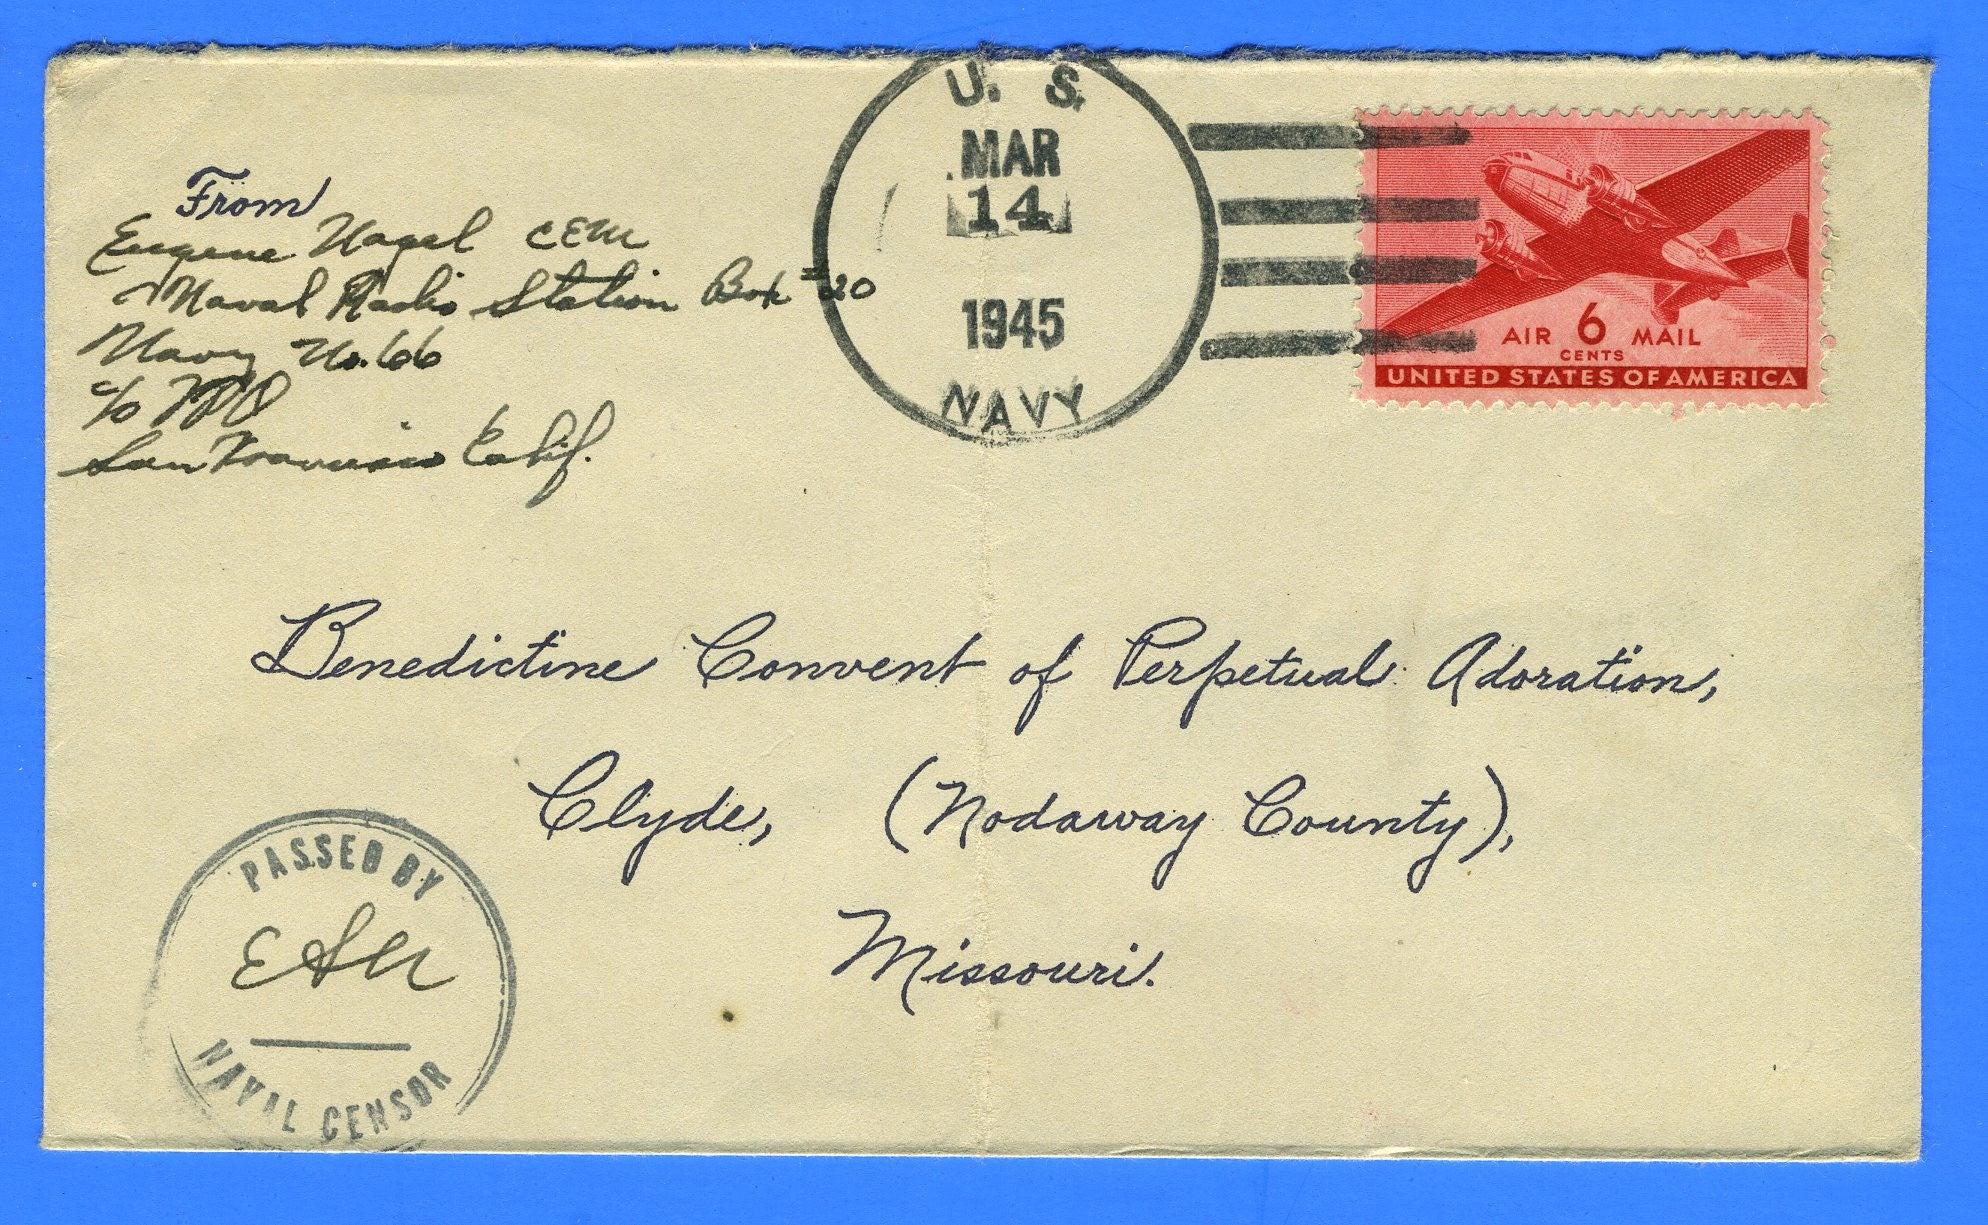 Sailor's Censored Mail Navy No. 66 Naval Radio Station Lualualei, Oahu, T.H. March 14, 1945